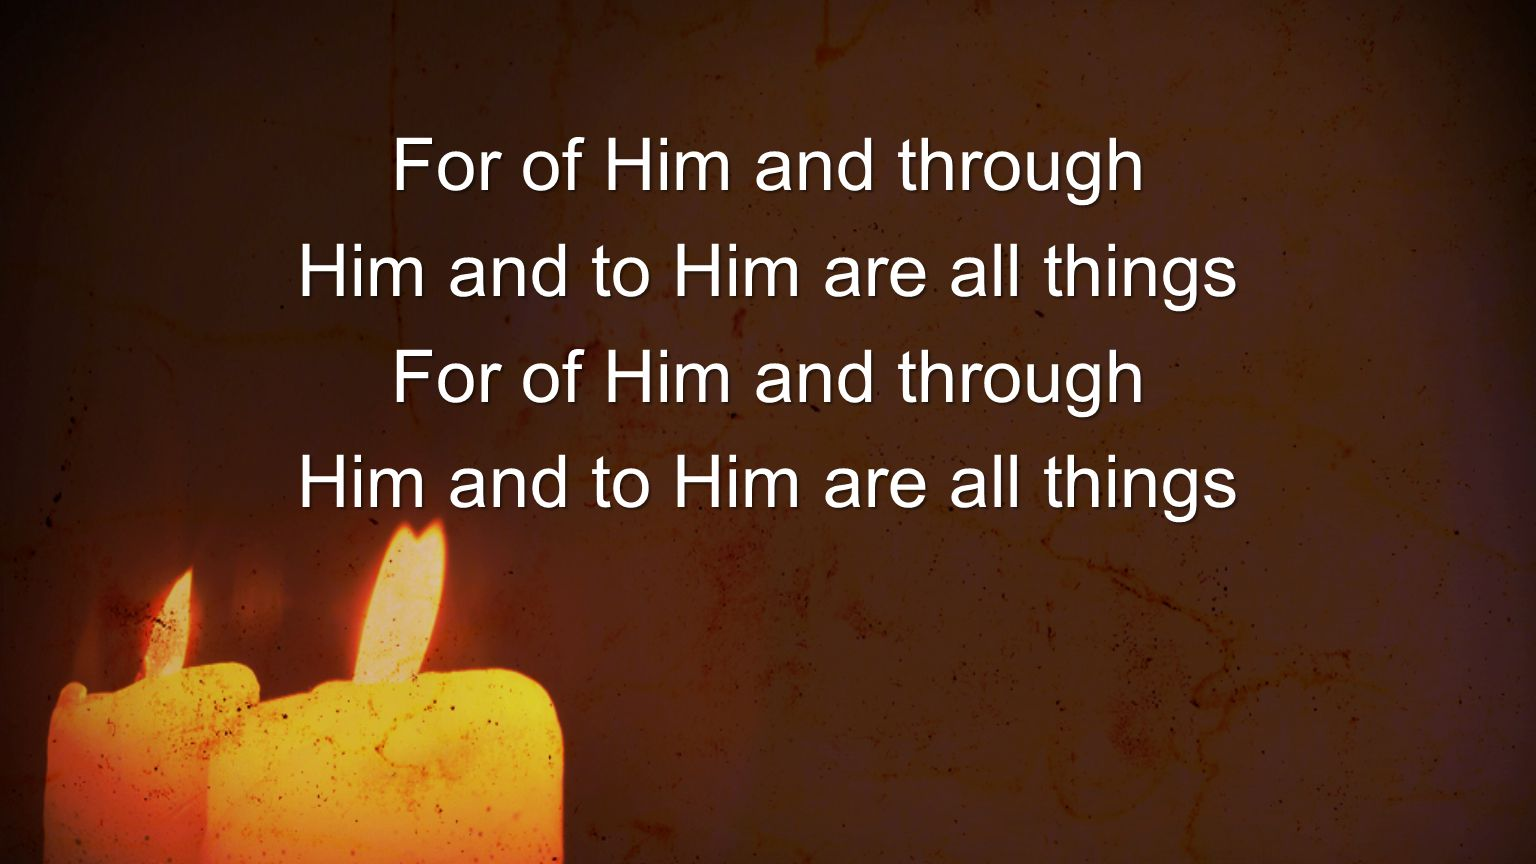 For of Him and through Him and to Him are all things